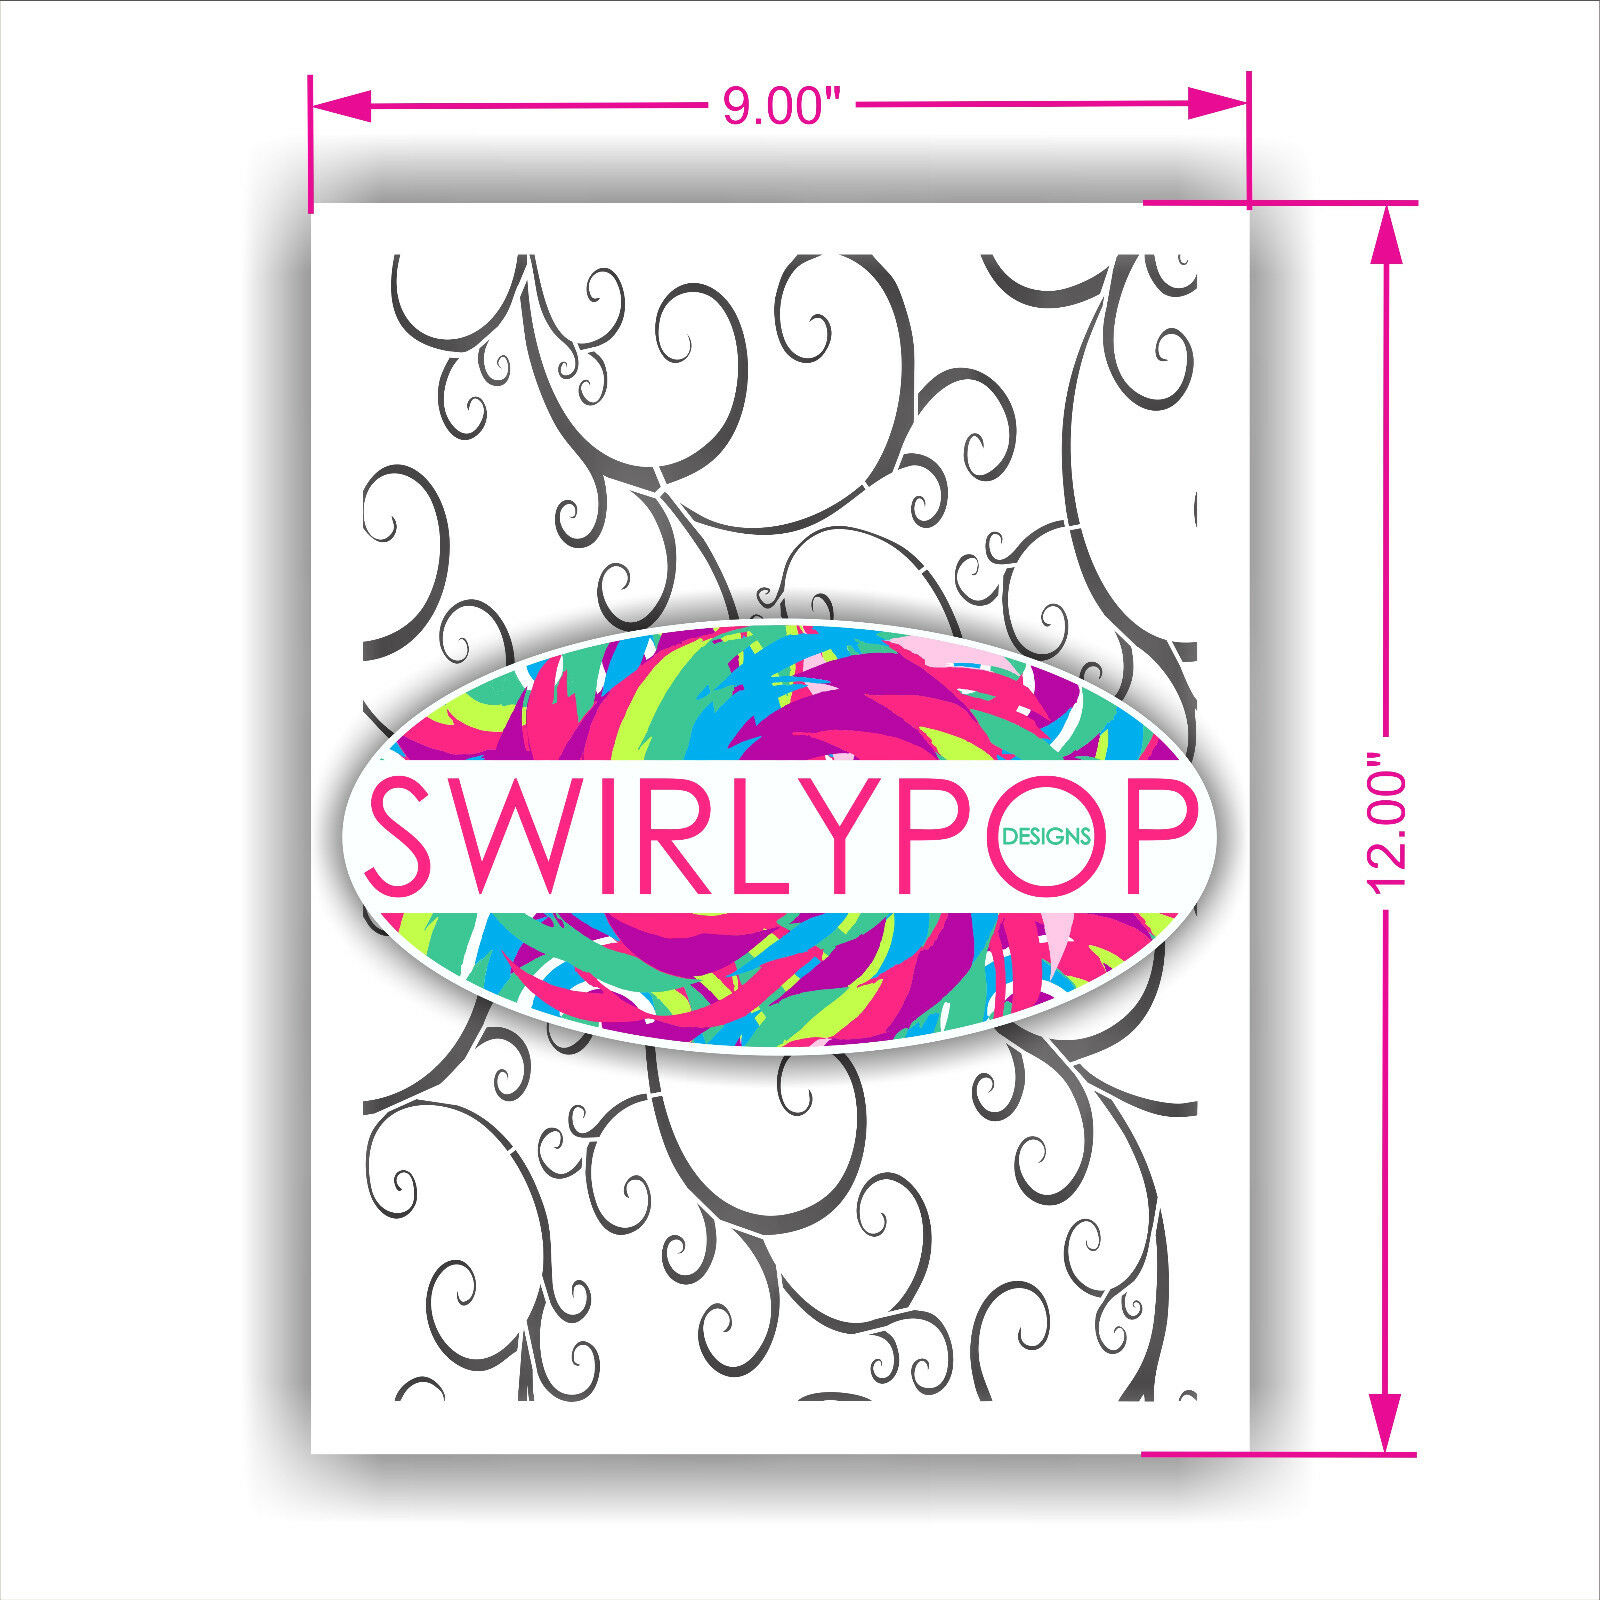 Swirlypop scroll wall stencil craft template 9 x 12 airbrush brand new lowest price amipublicfo Image collections